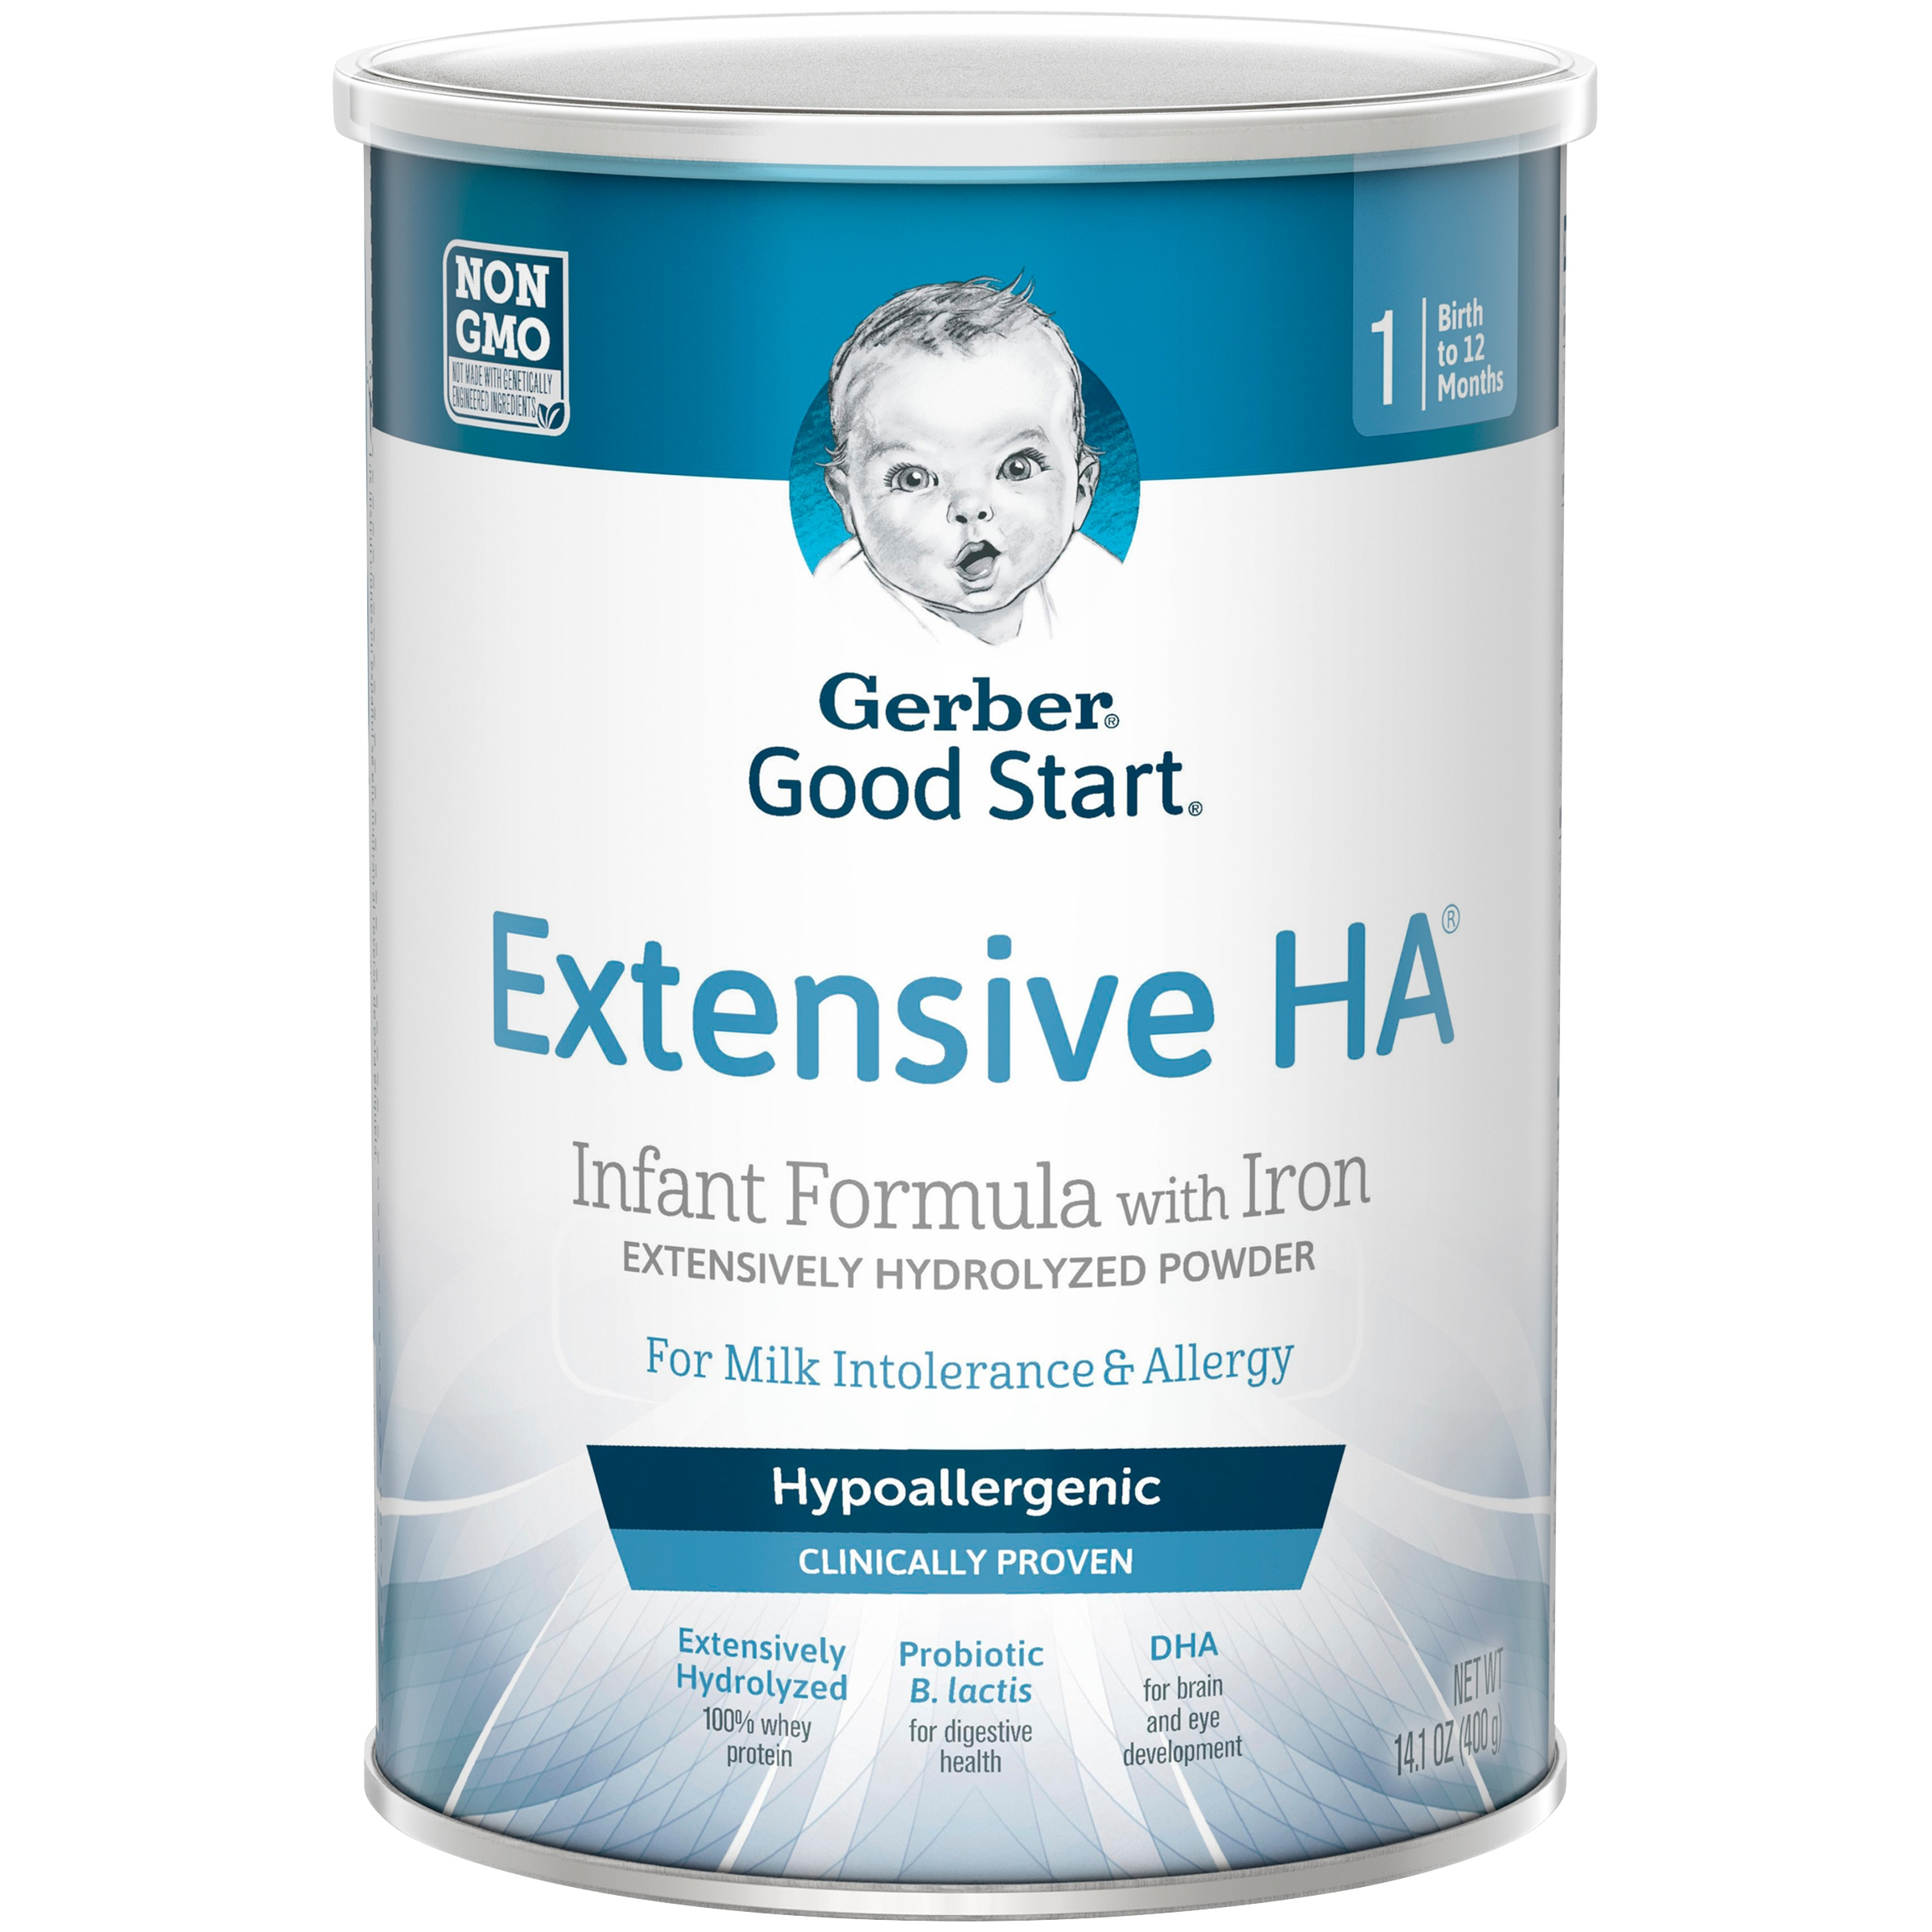 Gerber Extensive HA Hypoallergenic Powder Infant Formula with Iron, 14.1 oz